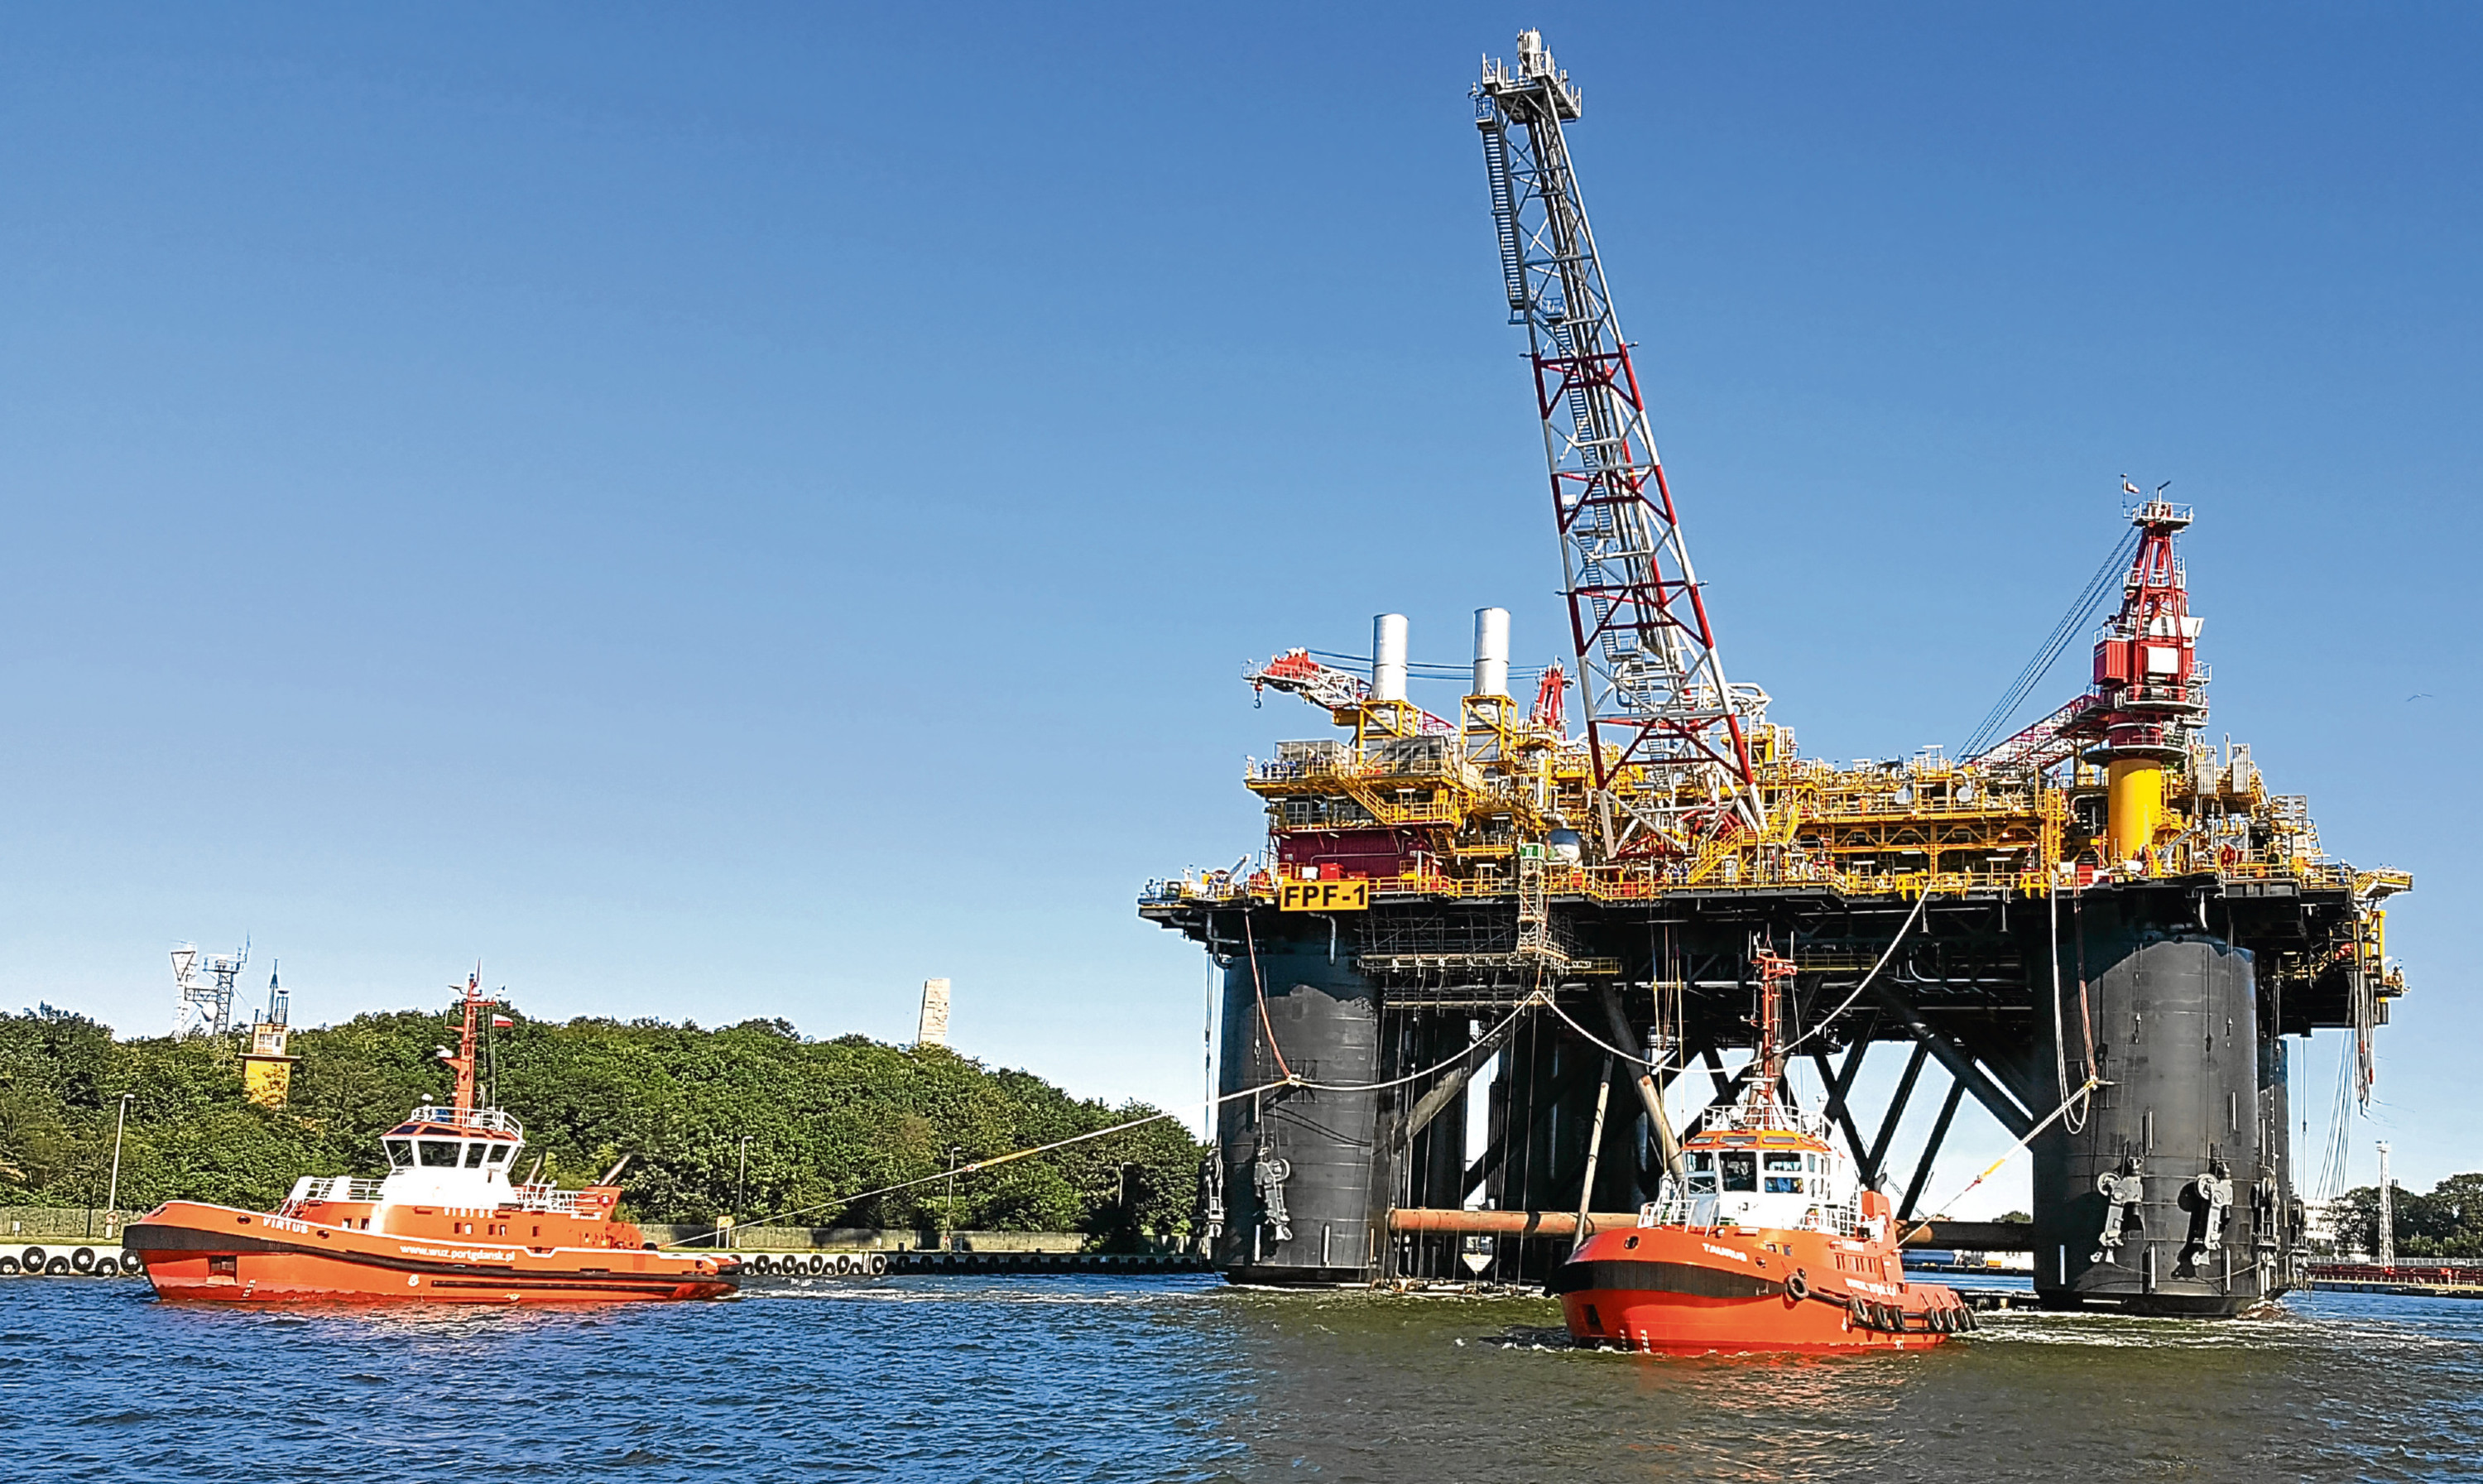 Ithaca Energy's Greater Stella floating production facility leaving the yard in Poland. First oil is expected in late 2016.